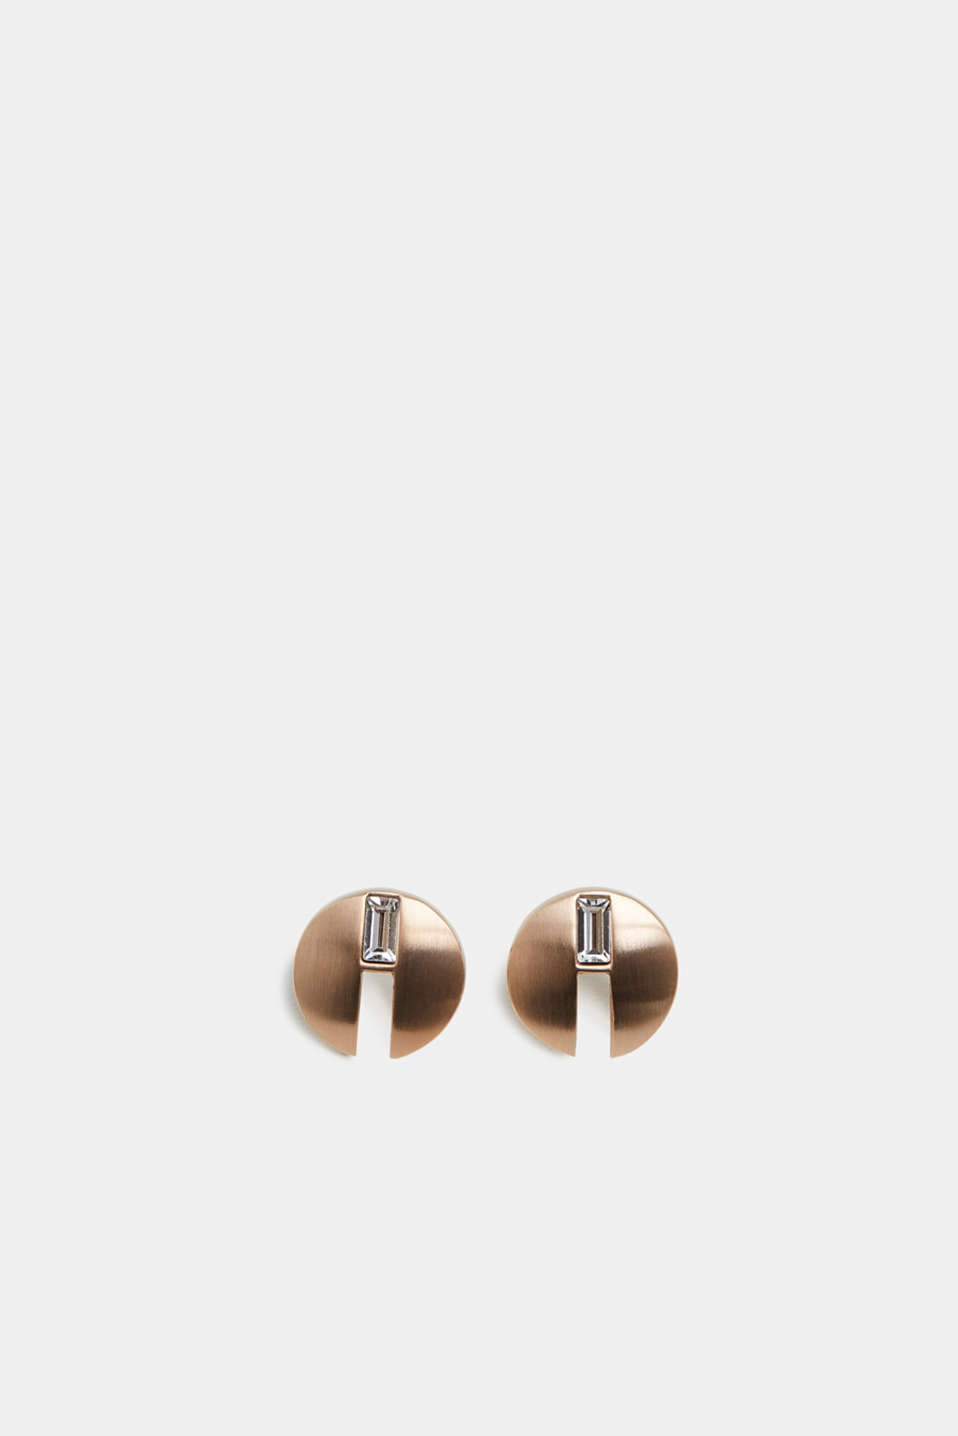 Esprit - Stainless steel stud earrings with baguette stones